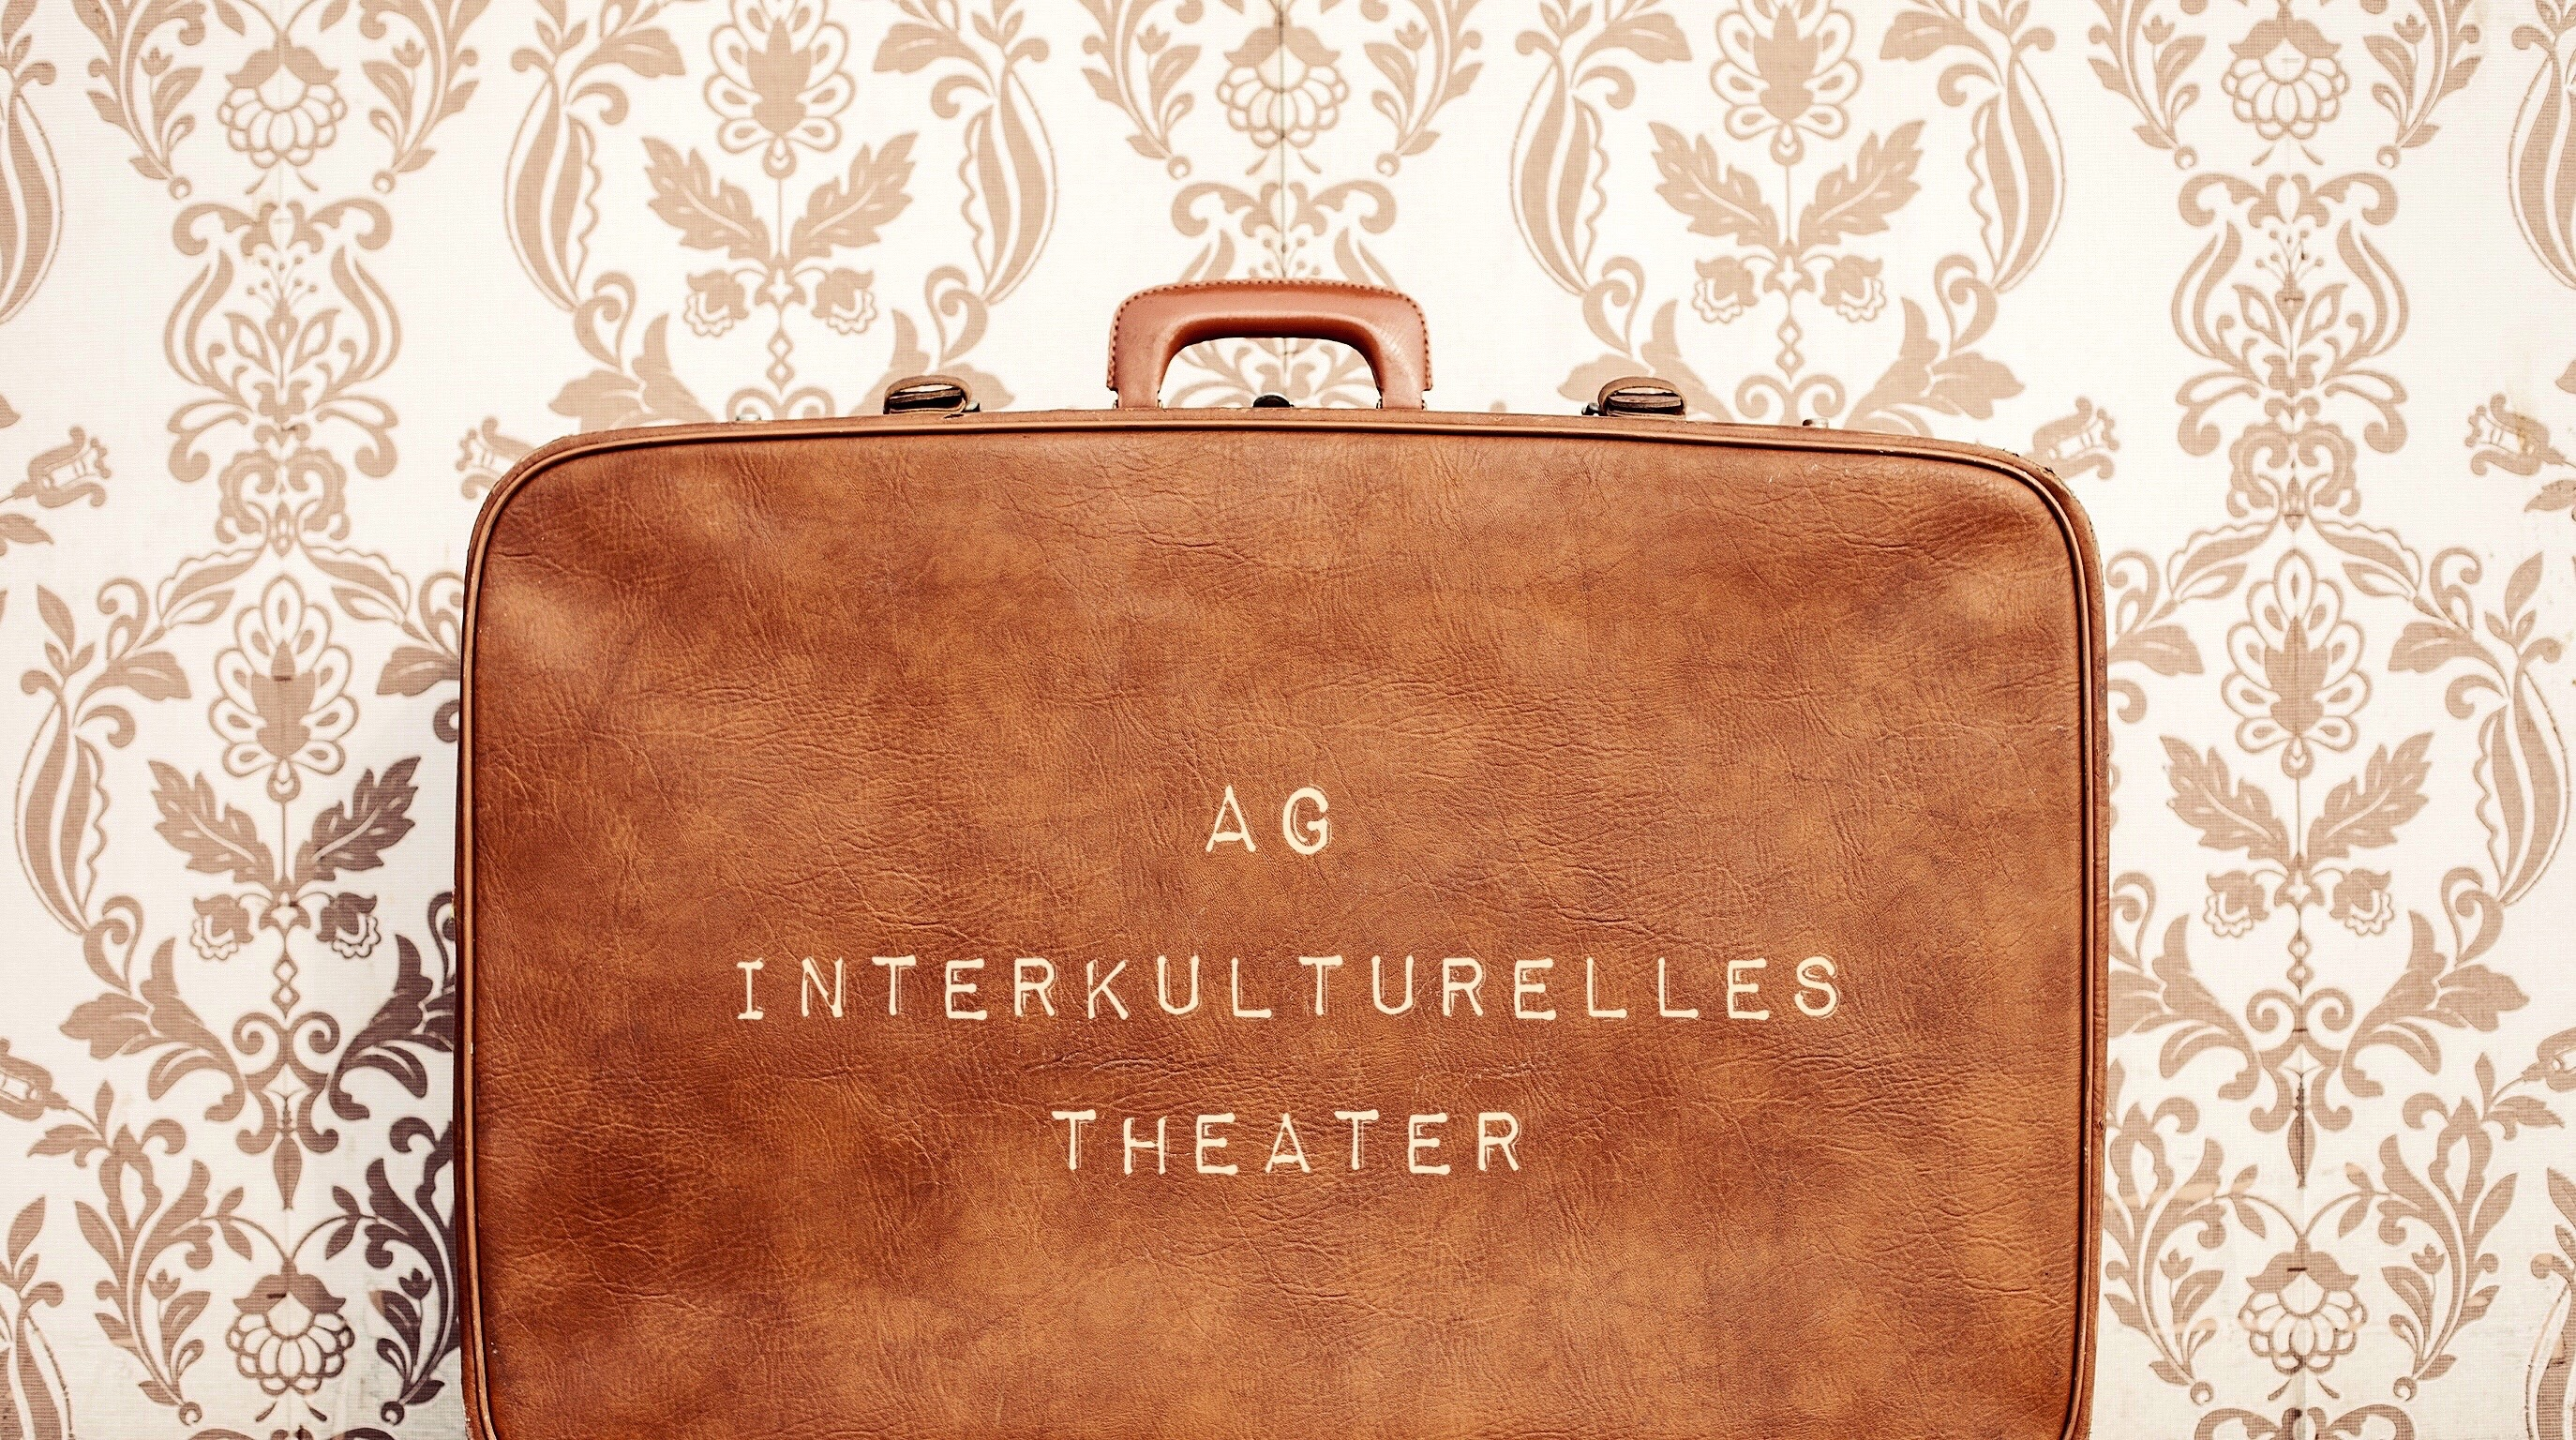 AG Interkulturelles Theater